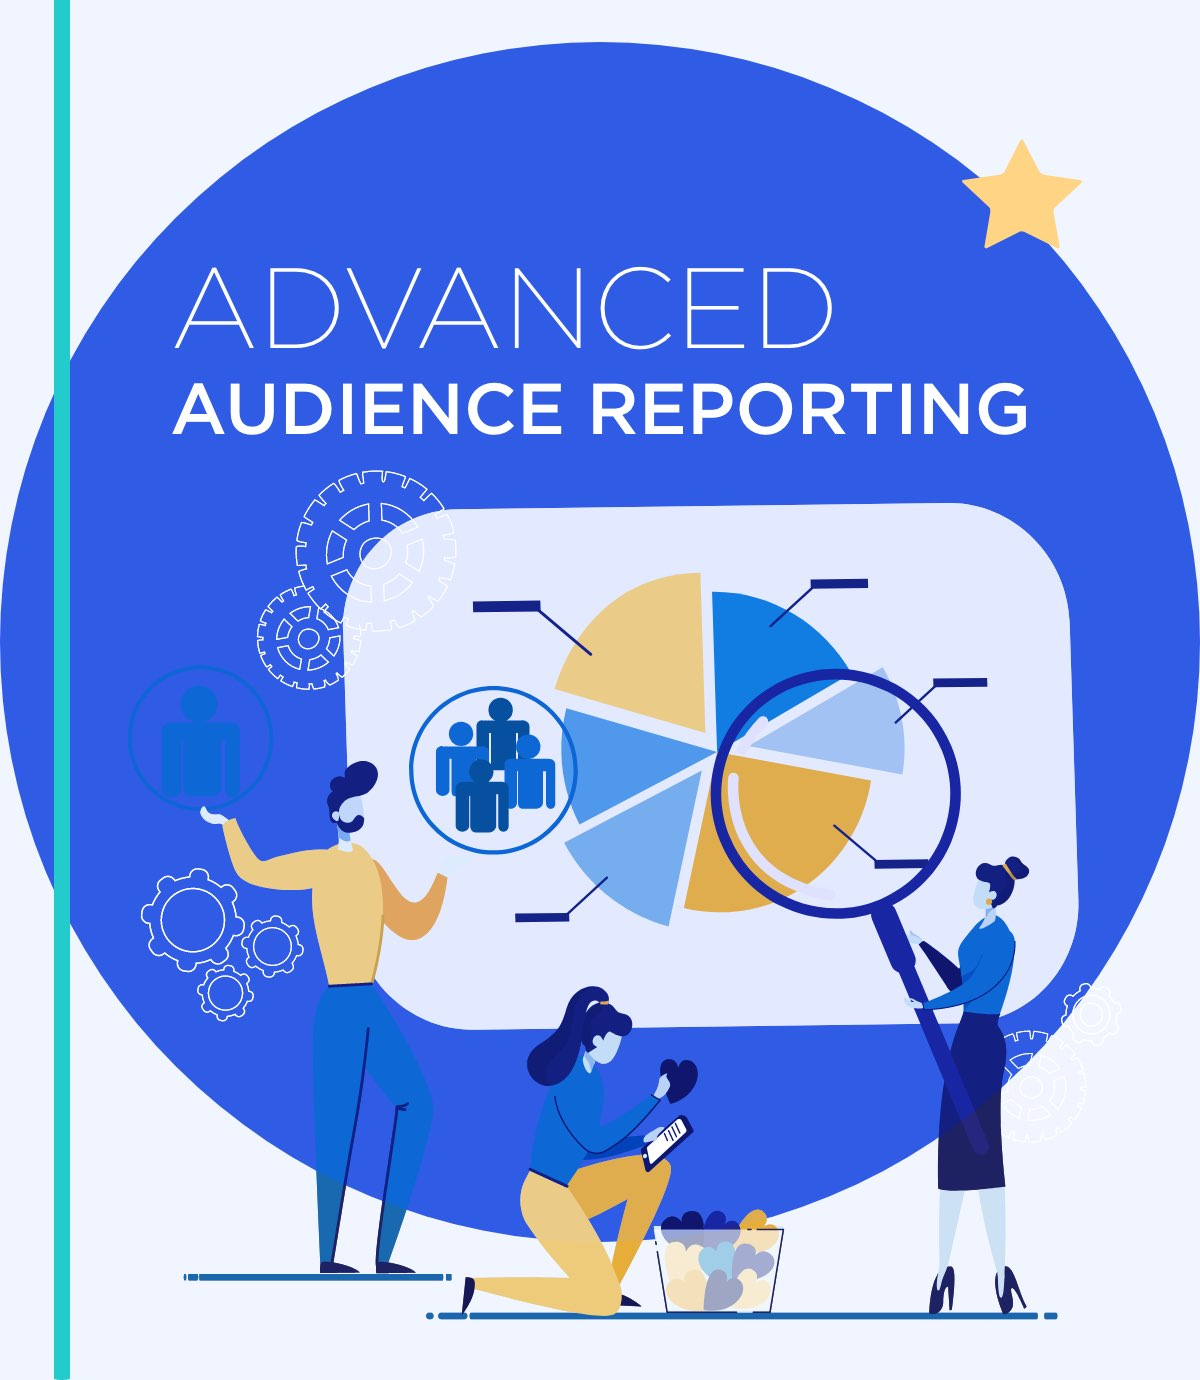 Audience Reporting